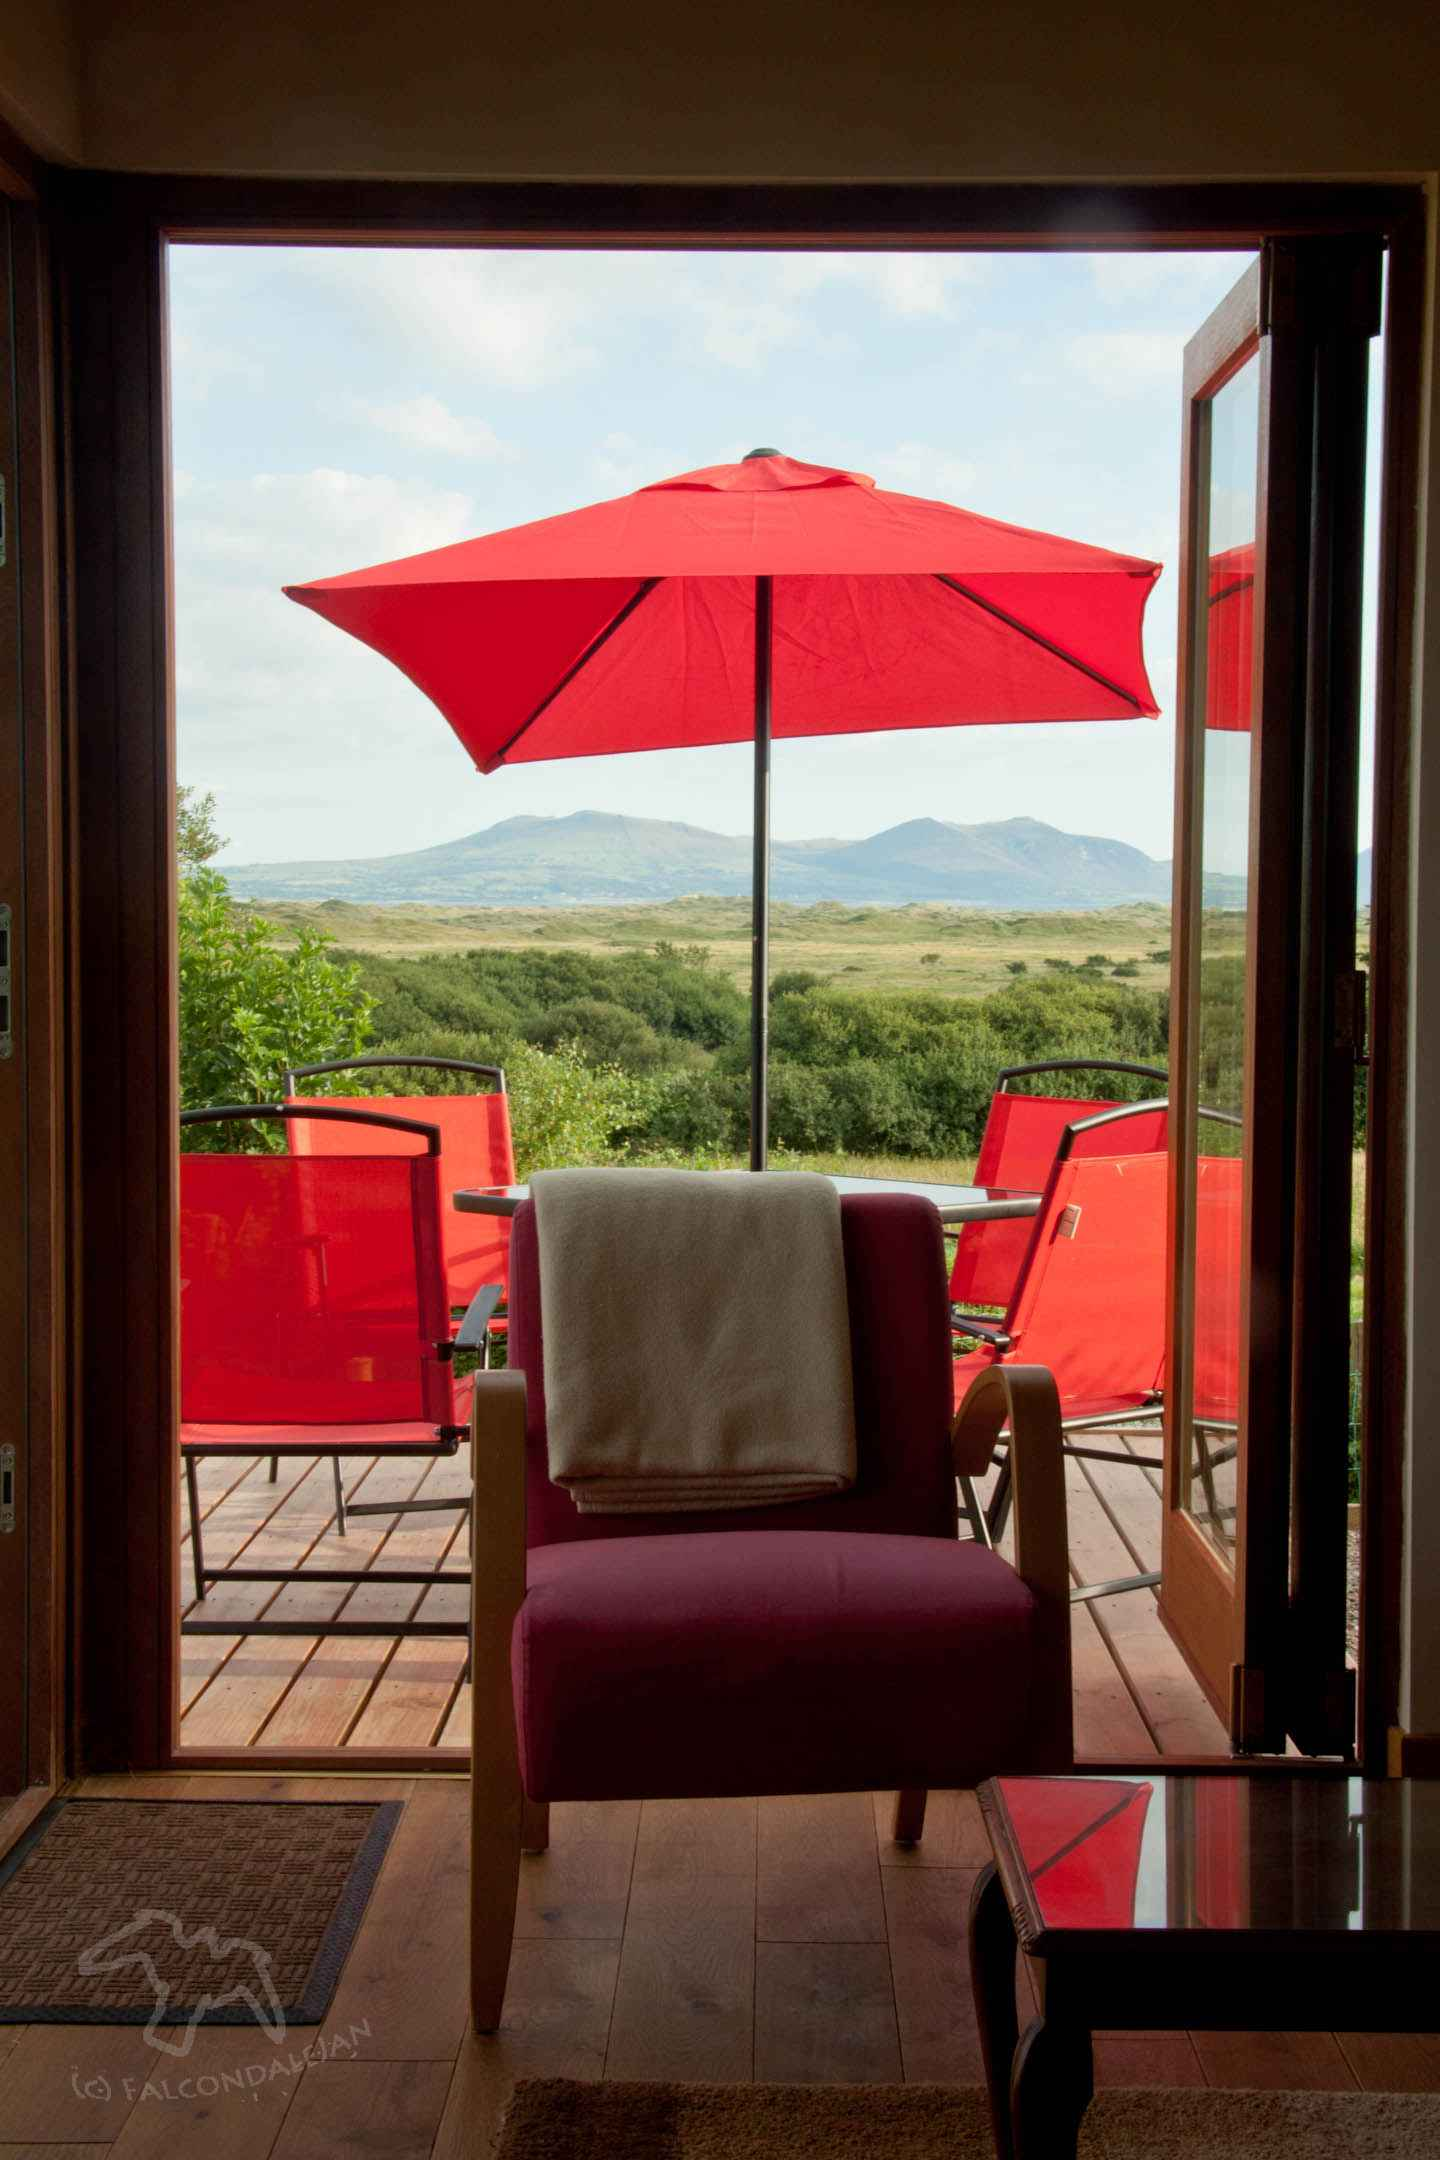 Ideas and tips for a vacation that's suitable for sensitive people. Where could we take an anxious teenager or child on holiday? Plan calmer family travel. Image description: view out of open patio doors, red furniture, mountains beyond.